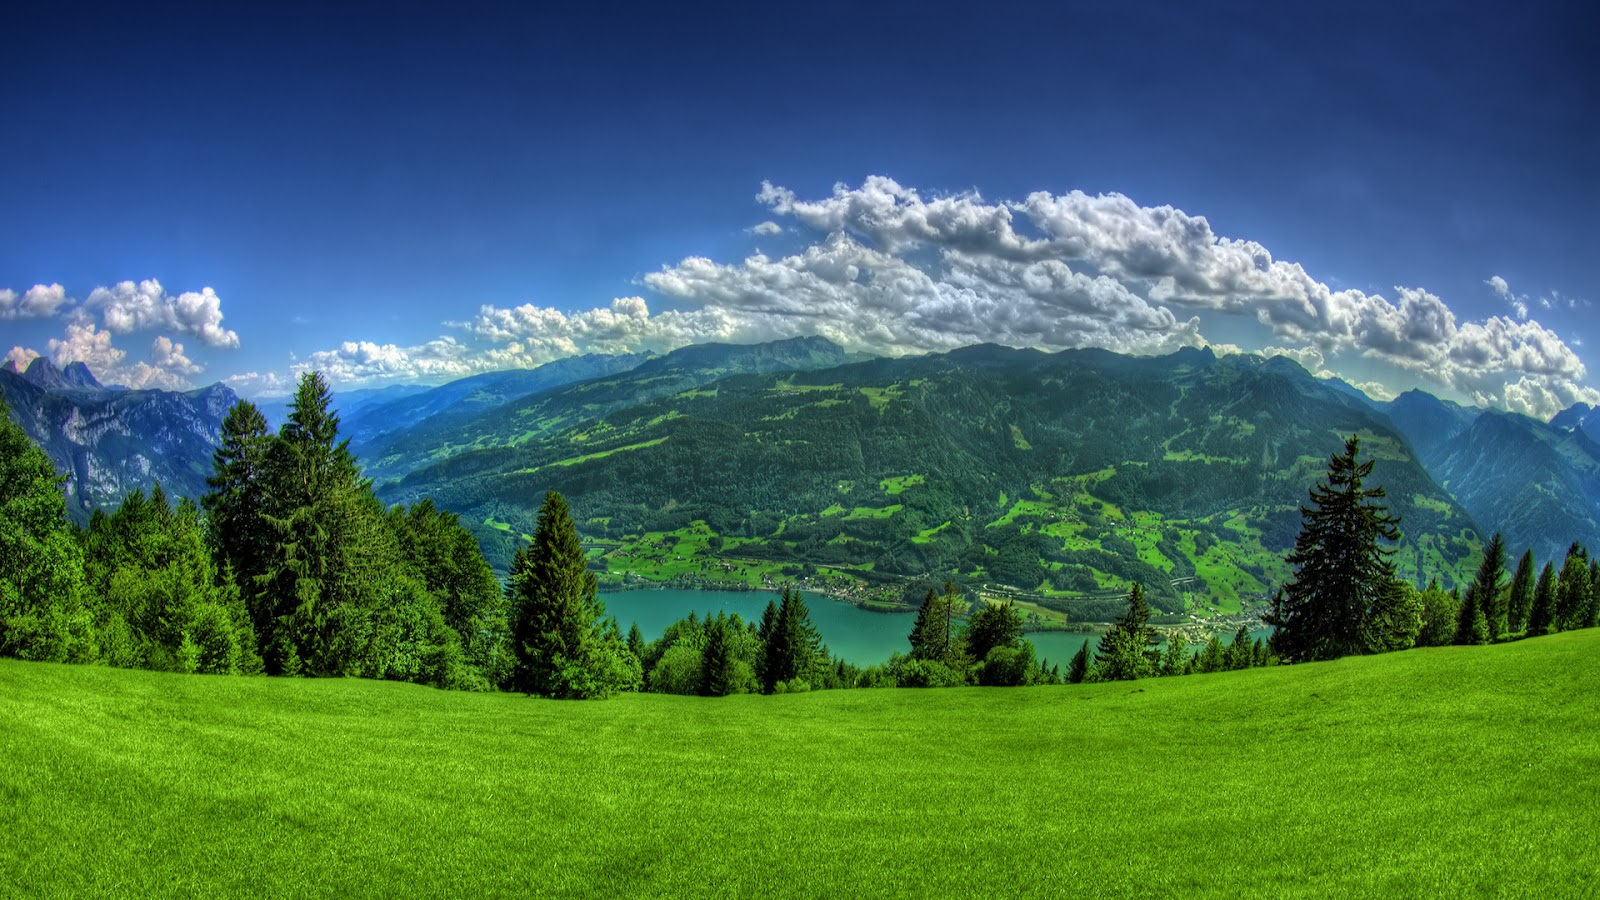 Full HD Nature High Res Wallpapers for Laptop Background Photos 1600x900